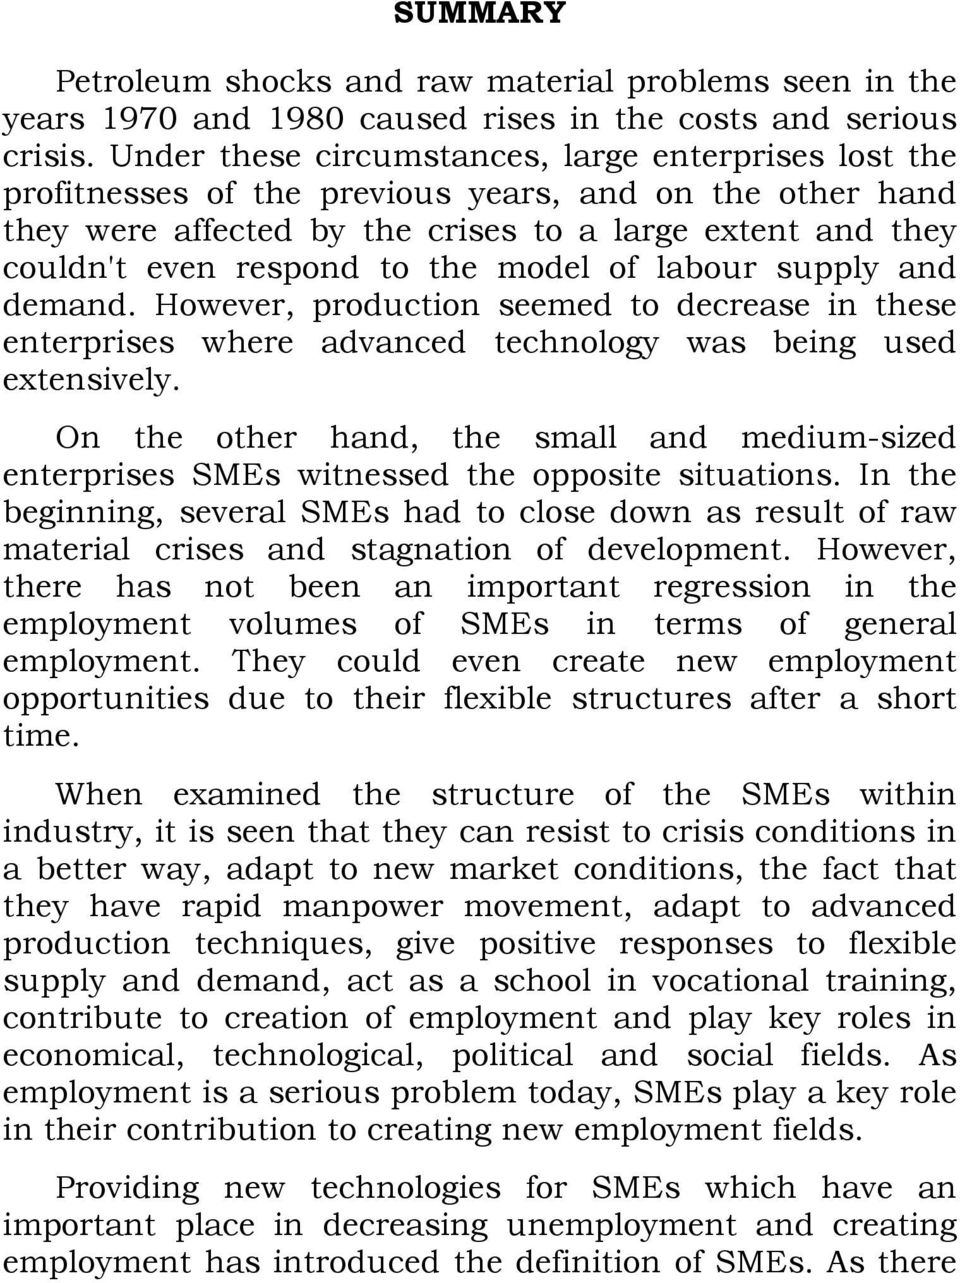 the model of labour supply and demand. However, production seemed to decrease in these enterprises where advanced technology was being used extensively.